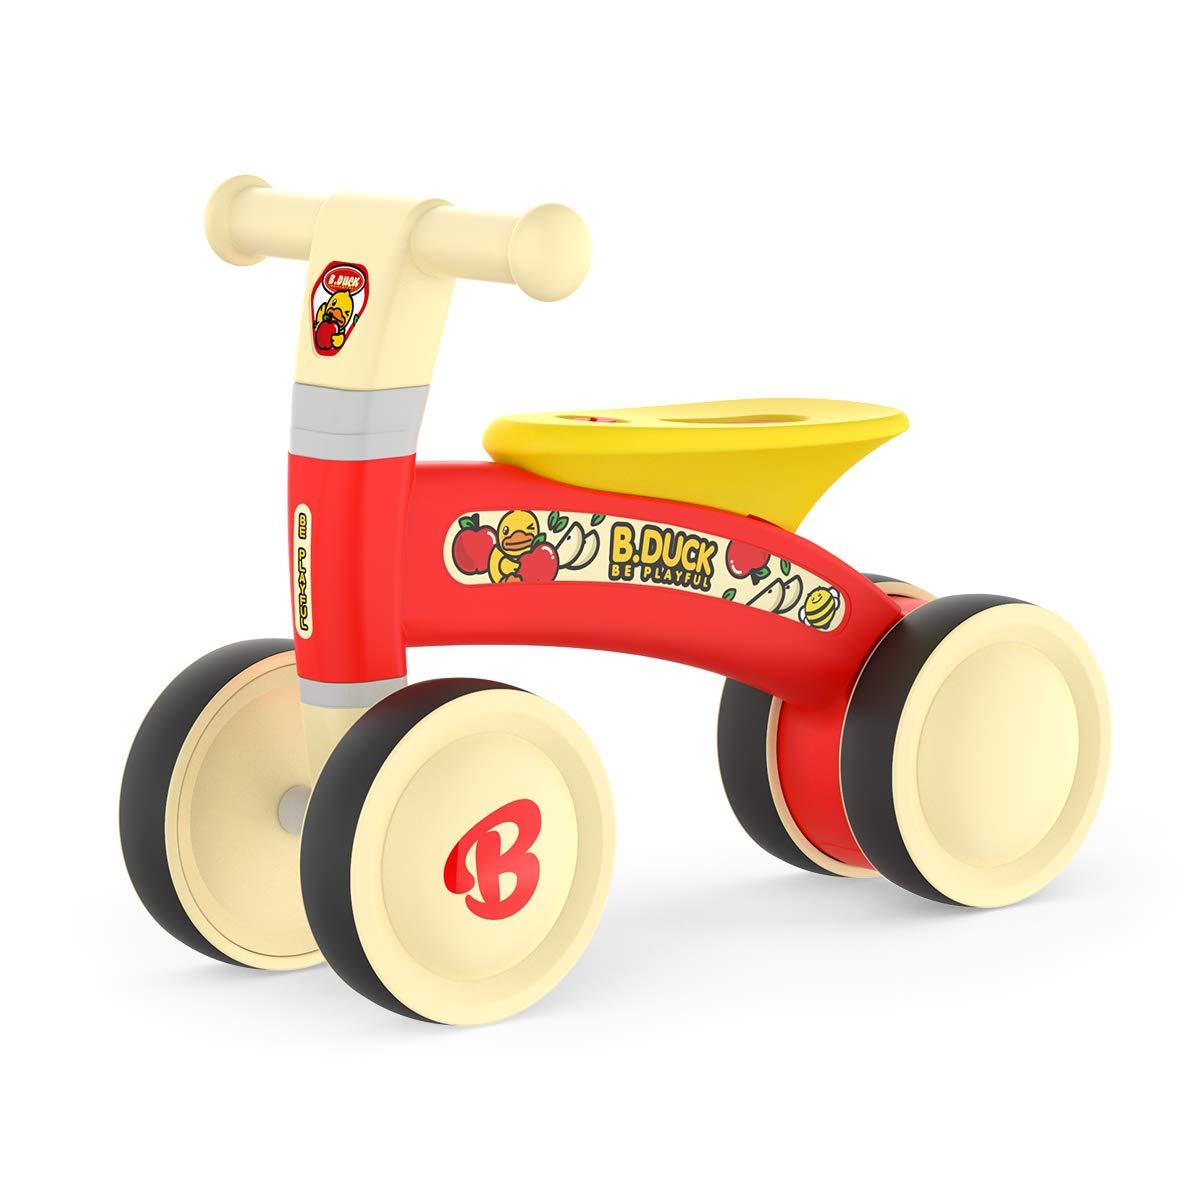 MINI Baby Balance Bike for 1 Year Old/'s Riding Toys for 10-24 Months Toddler